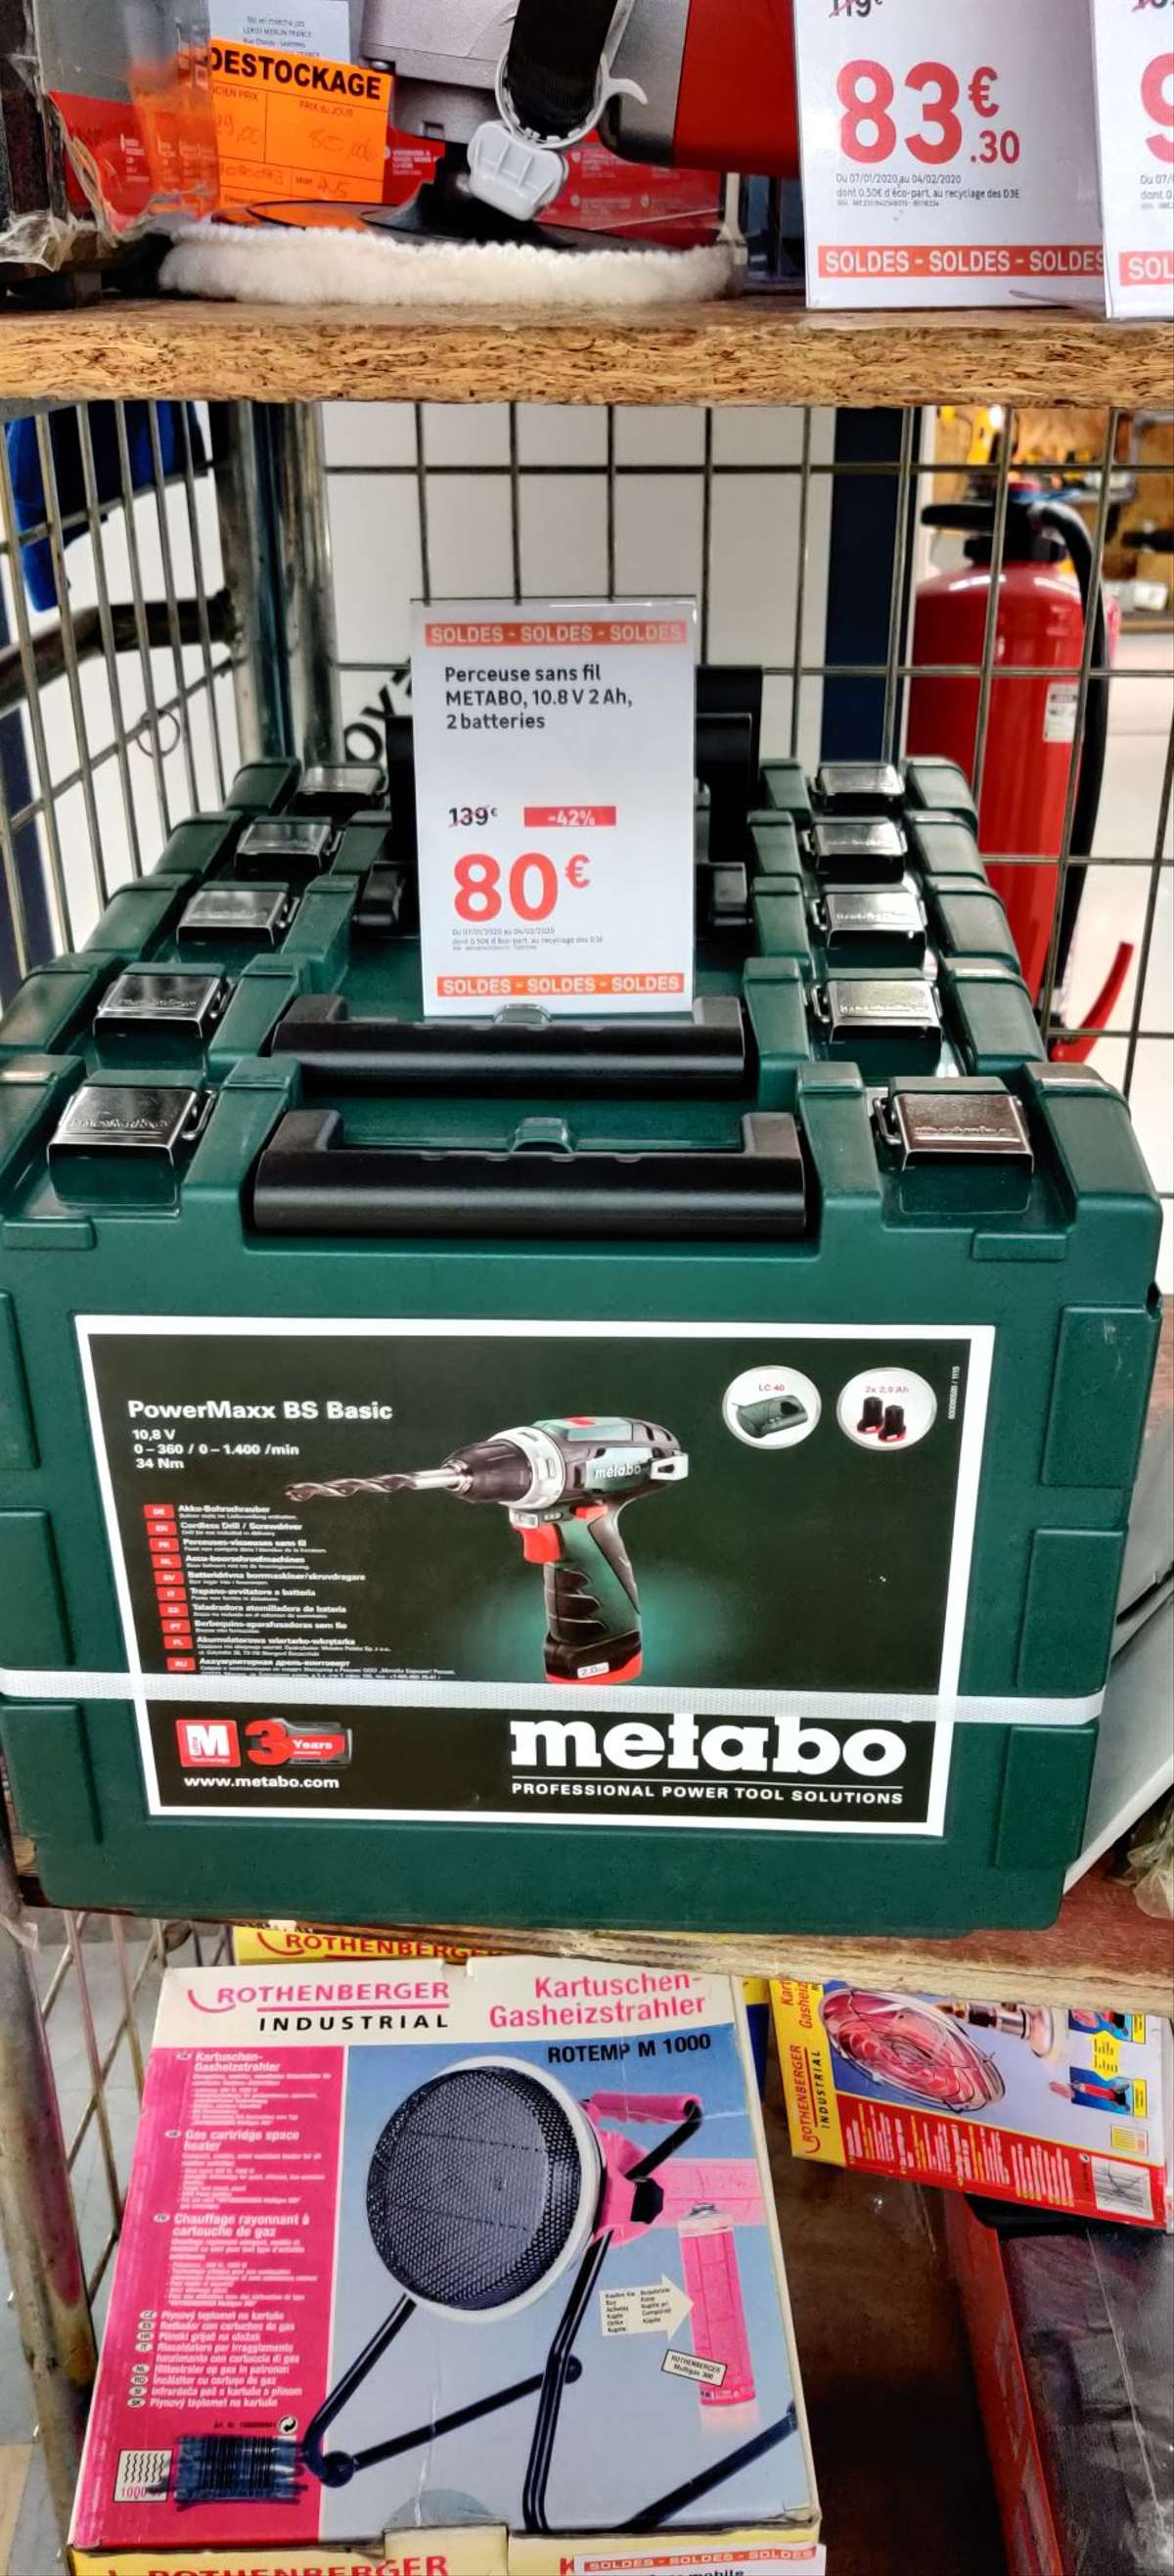 Perceuse Visseuse Metabo Powermax Bs Basic 108v 2